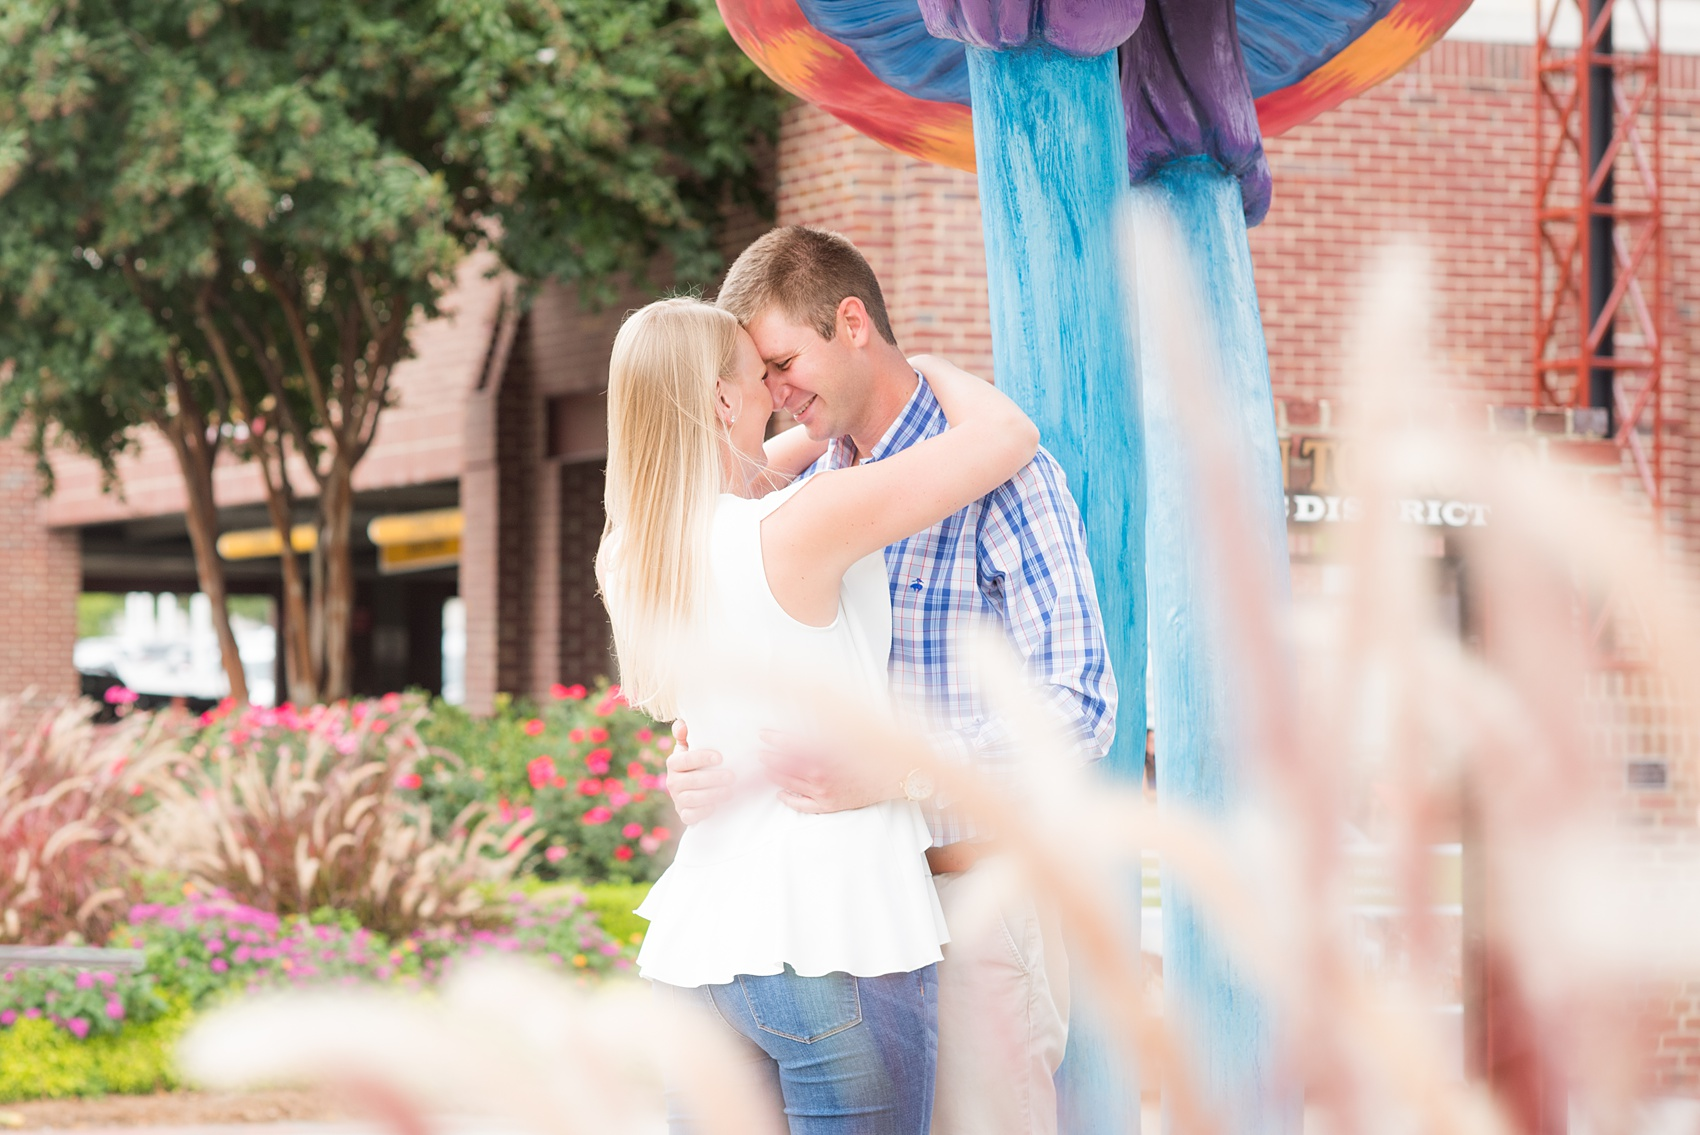 Mikkel Paige Photography photos from an engagement session at Durham's American Tobacco Campus in North Carolina. Colorful picture with the couple embracing.